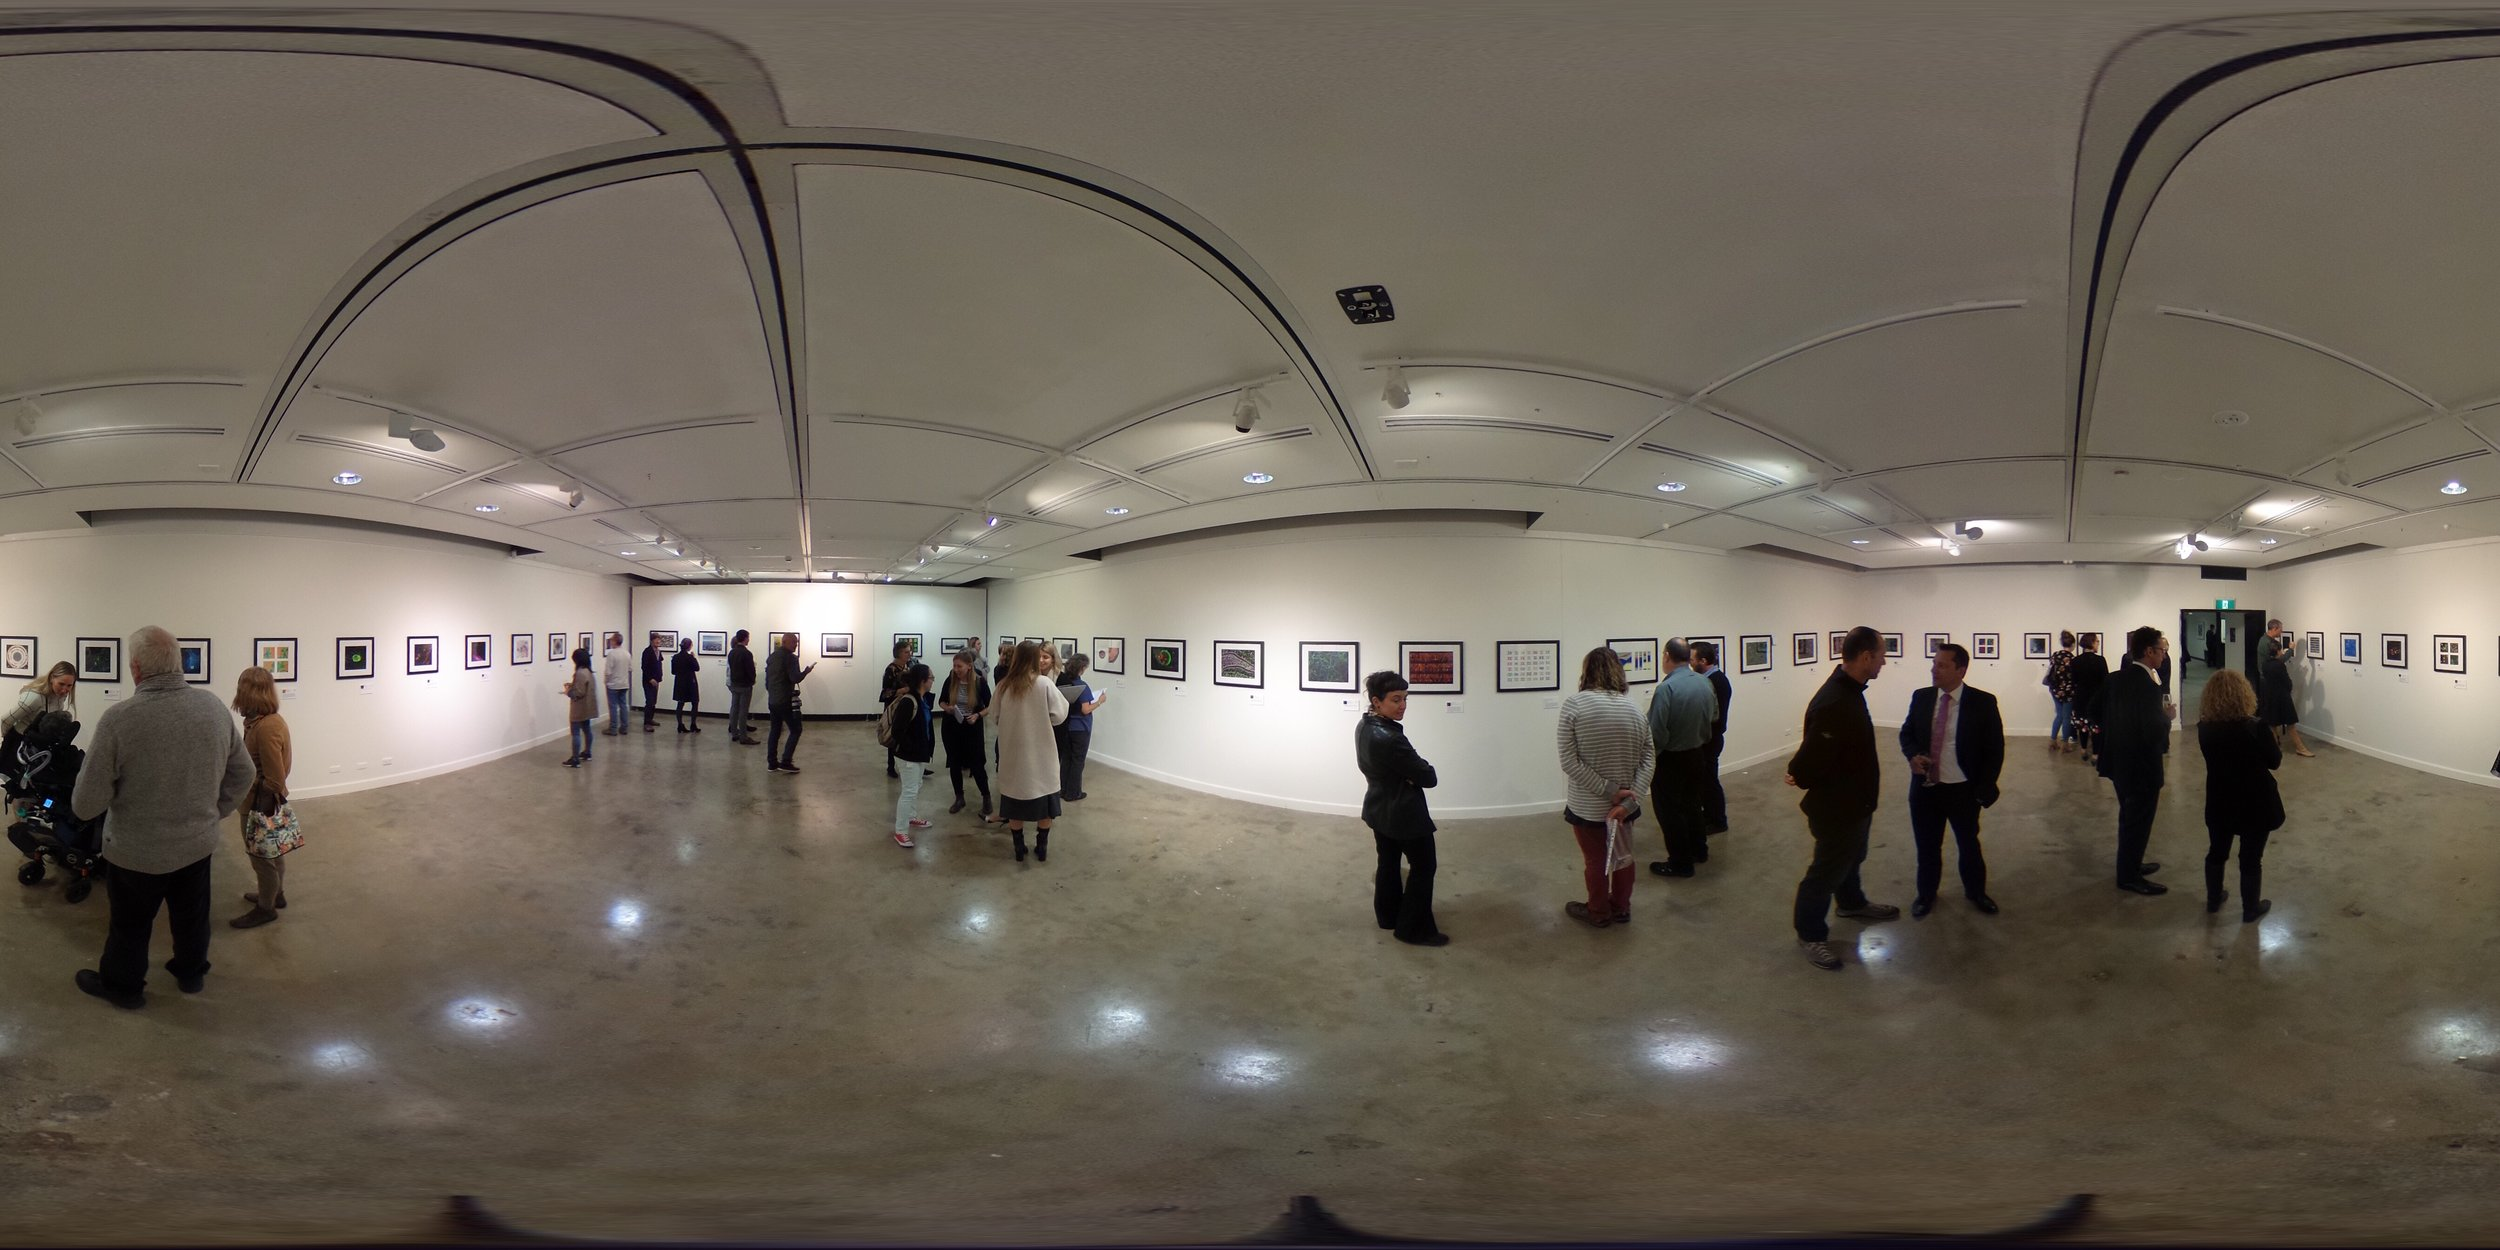 The inaugural Magnified Science Art Exhibition was held at the University of Wollongong's TAEM Gallery in July 2018 and featured artworks from neuroscientists, chemists, engineers, microbiologists, environmental and materials scientists.